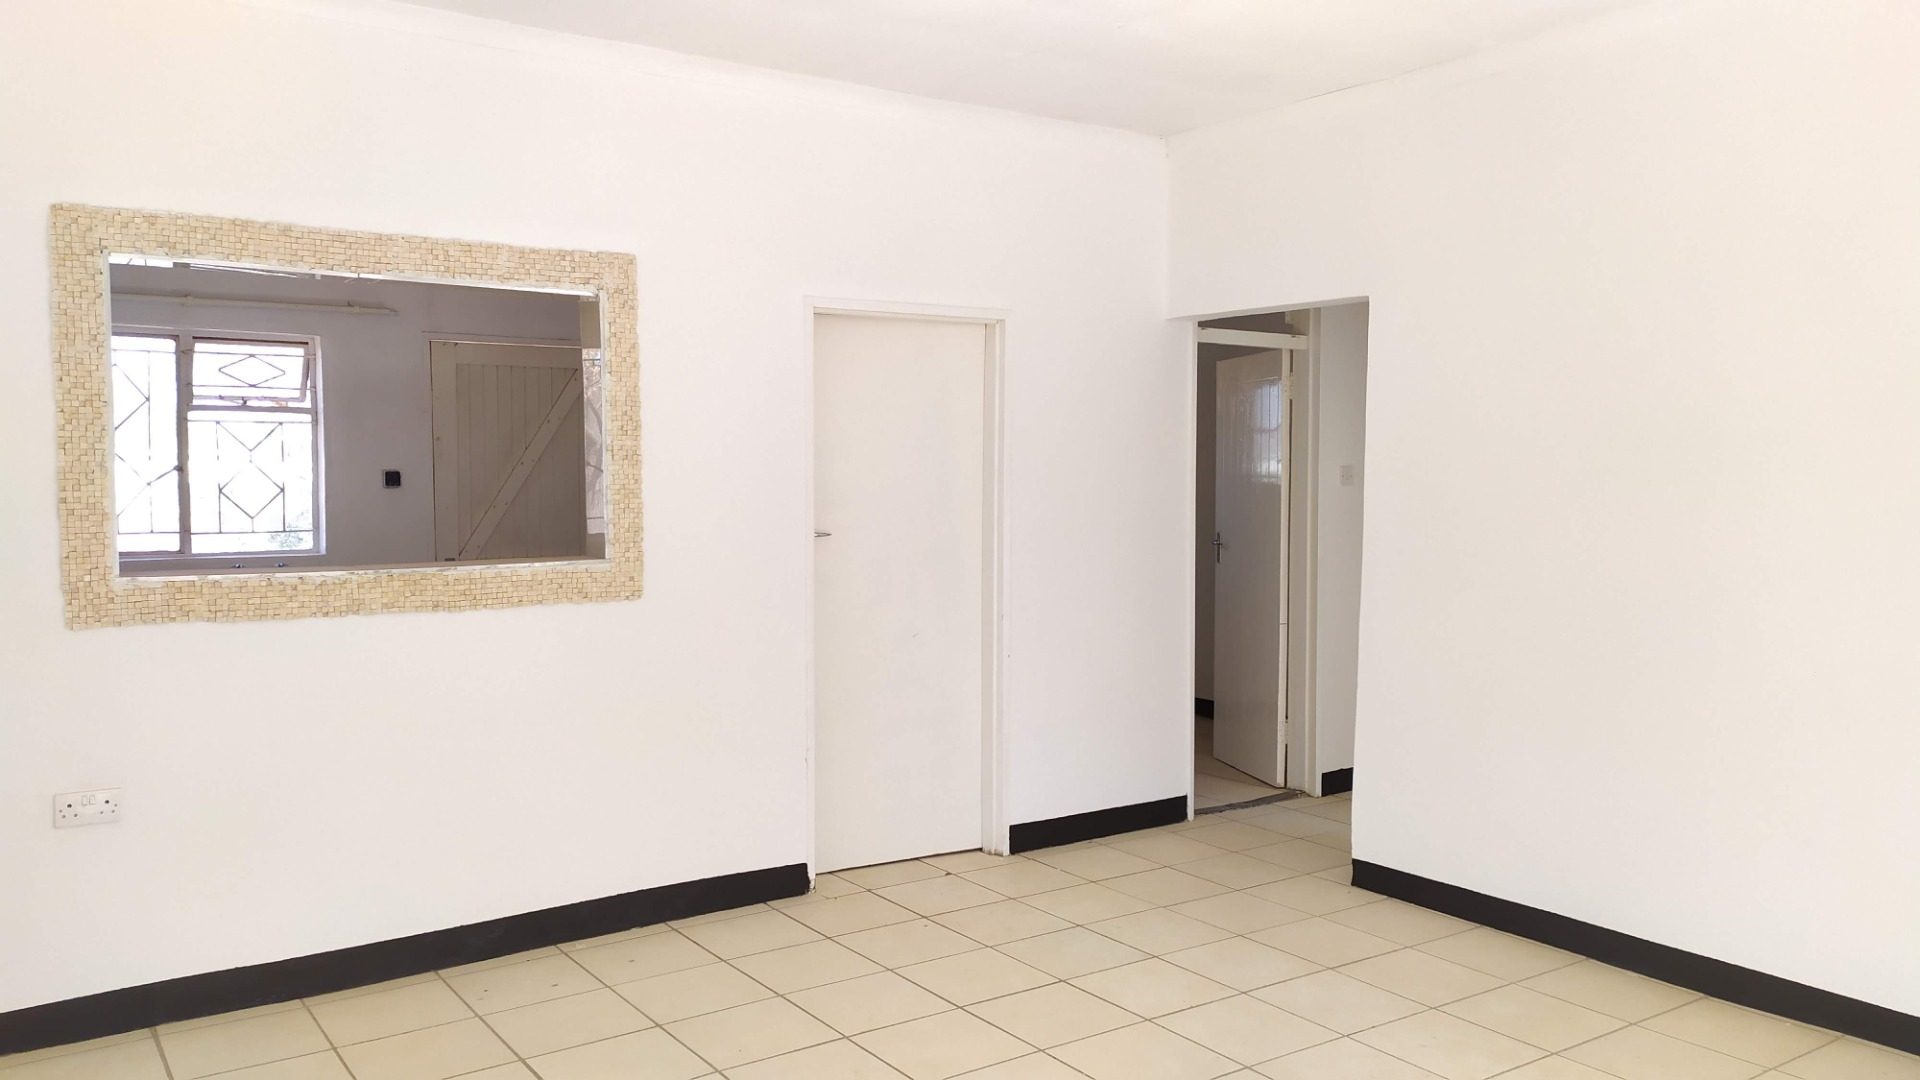 14 Bedroom House For Sale in Gaborone